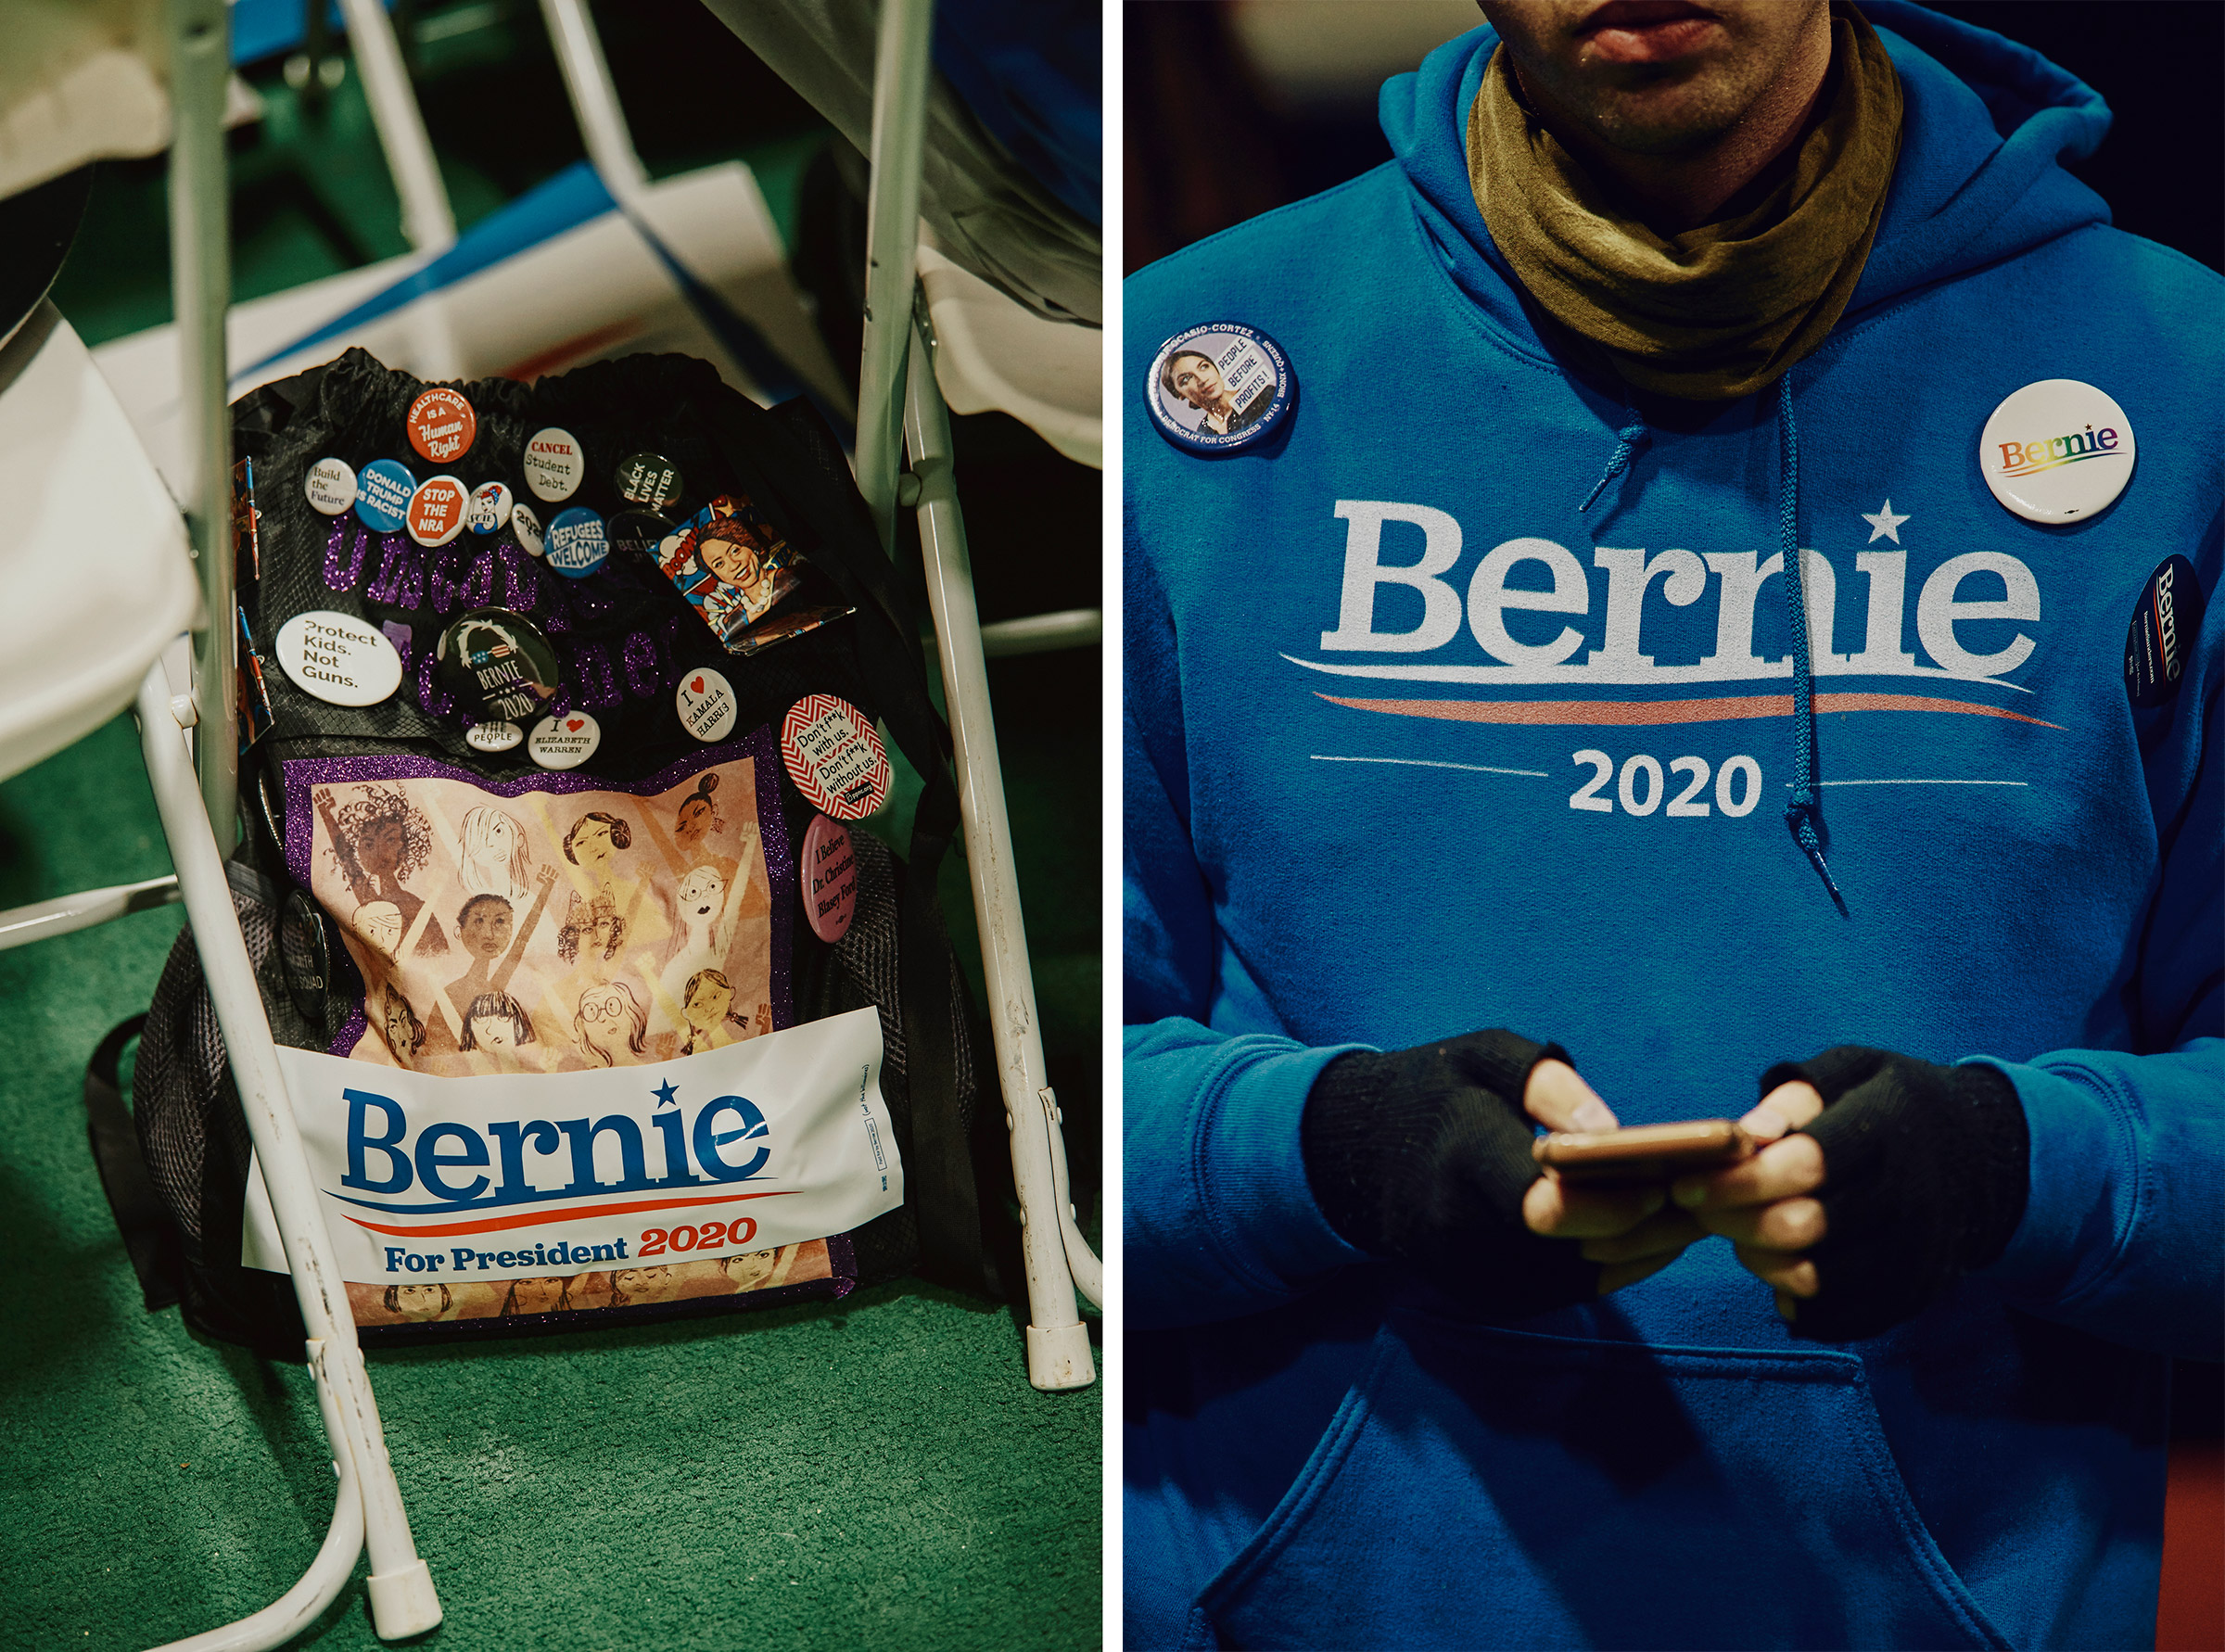 Details from the Bernie Sanders 2020 Debate Watch Party in Manchester, N.H. on Feb. 7, 2020.